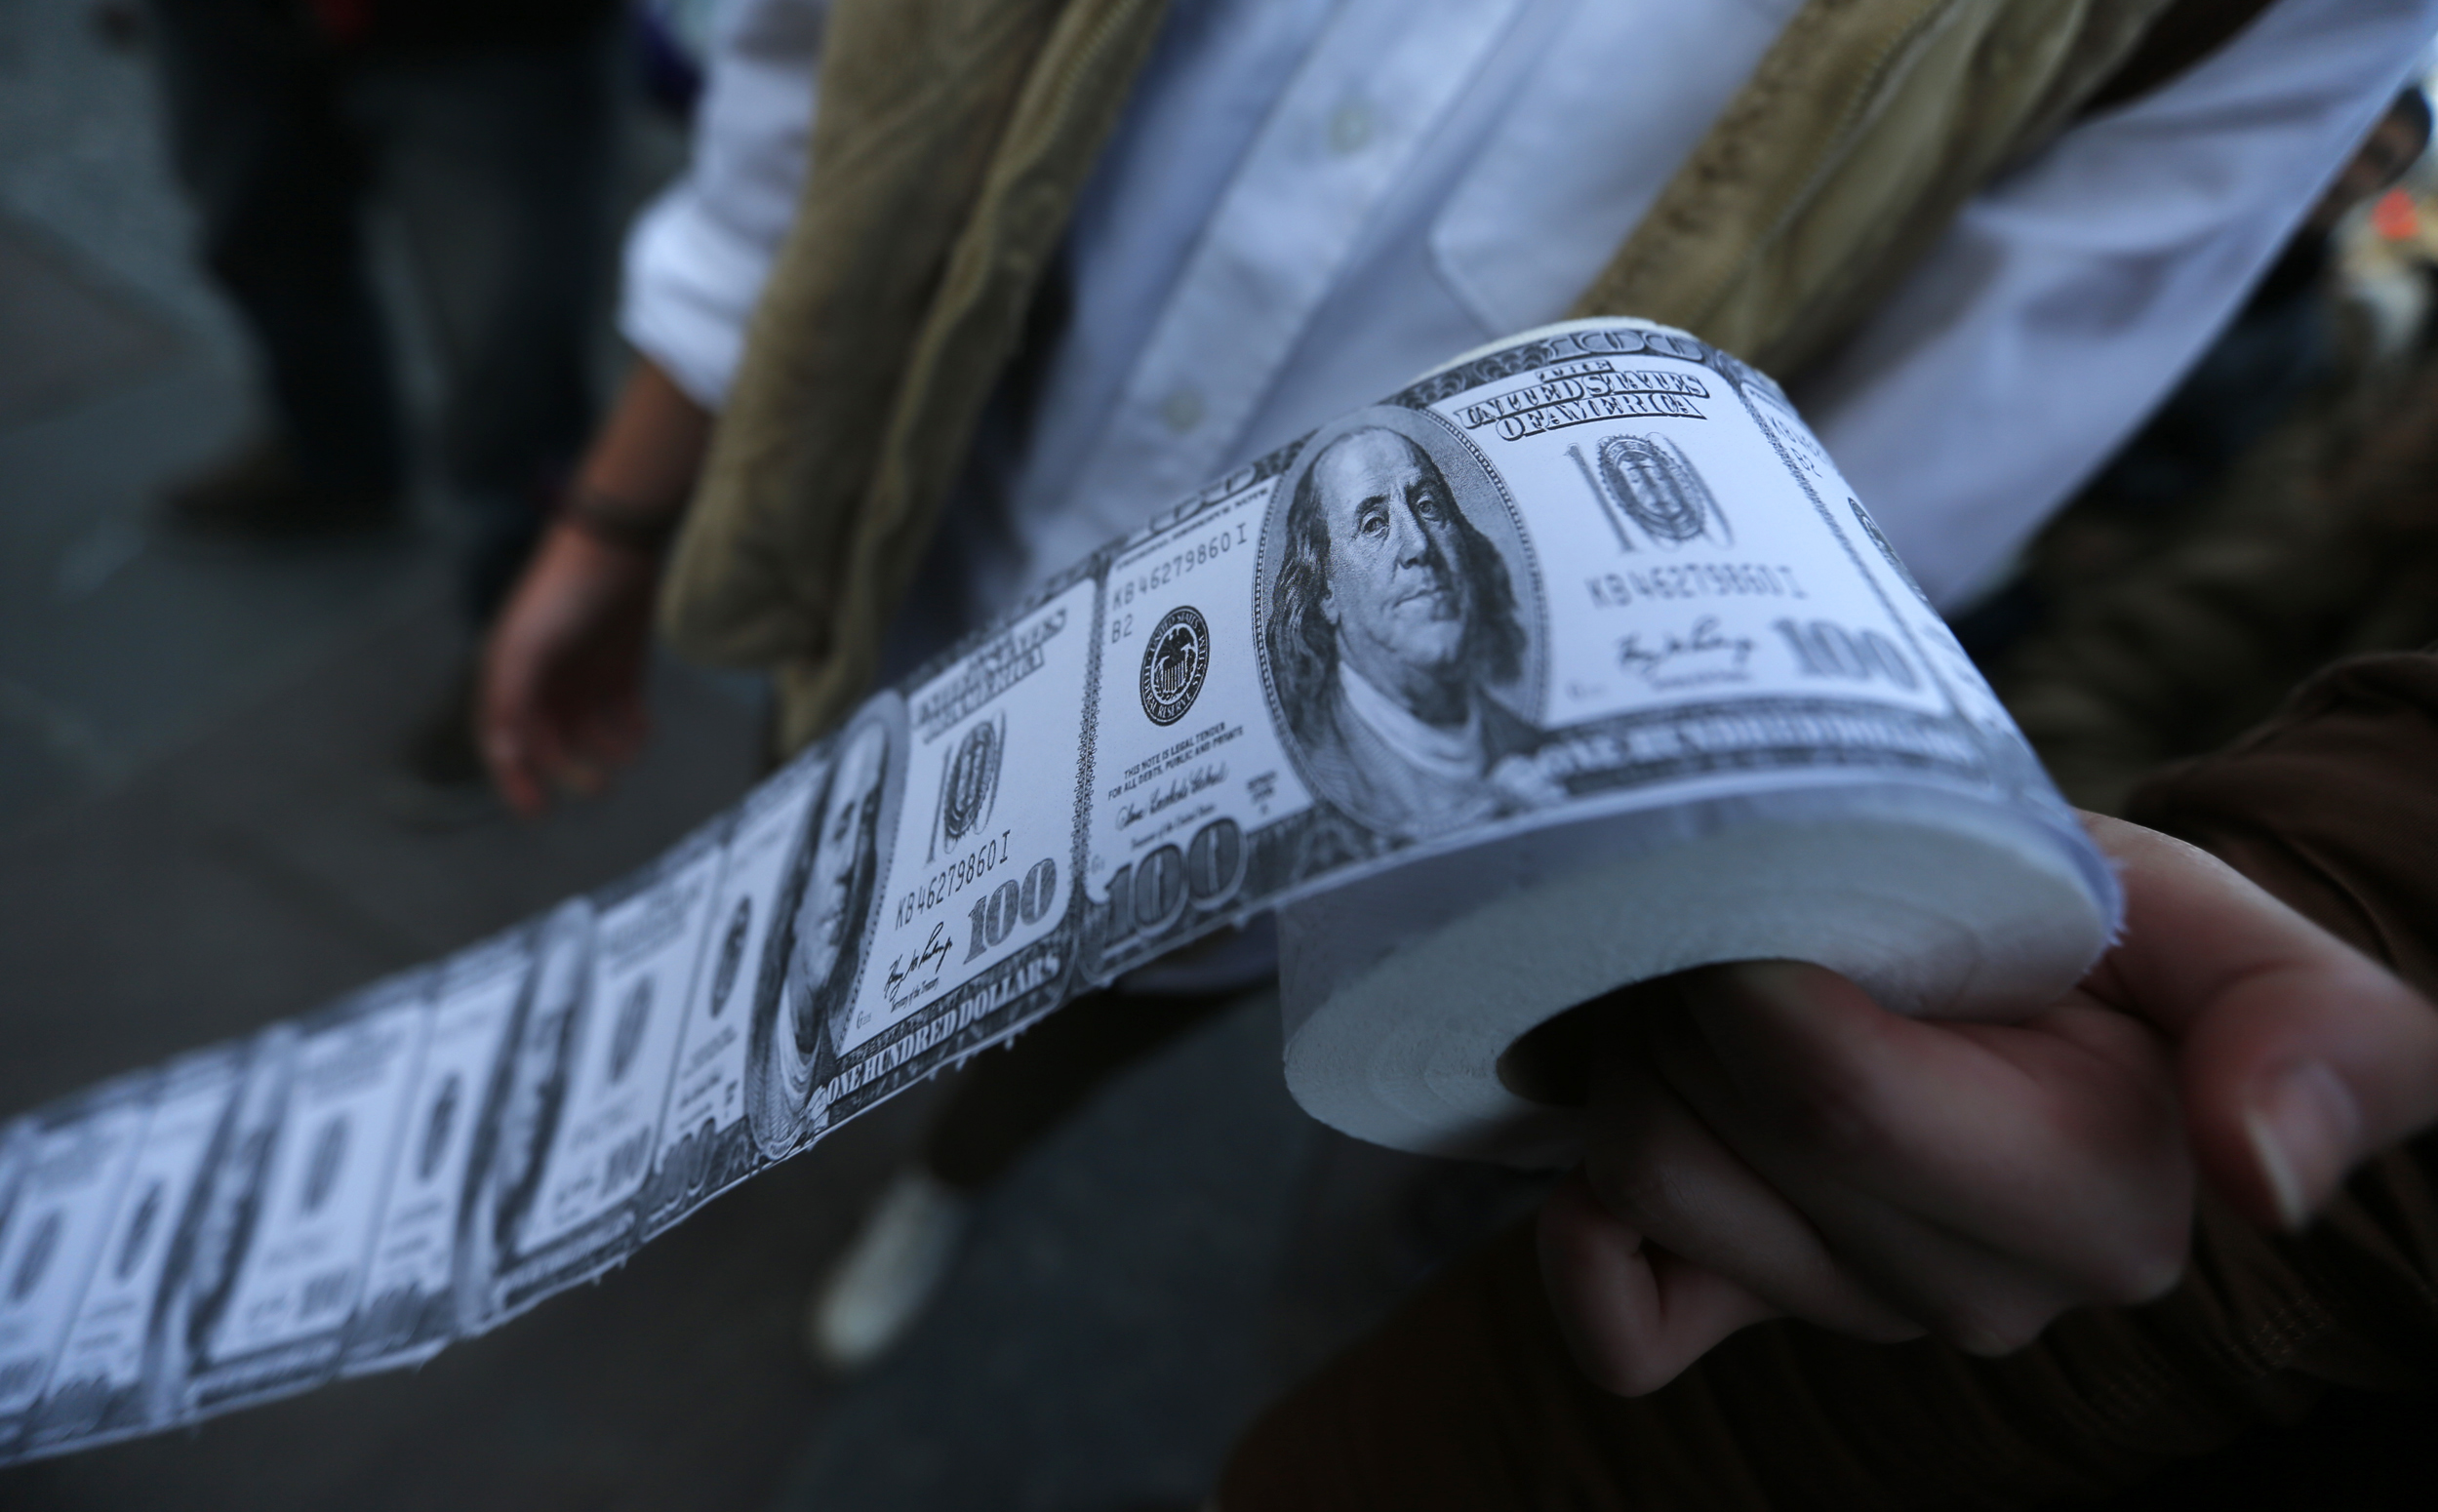 A demonstrator holds toilet paper made from fake U.S. dollars during a protest.